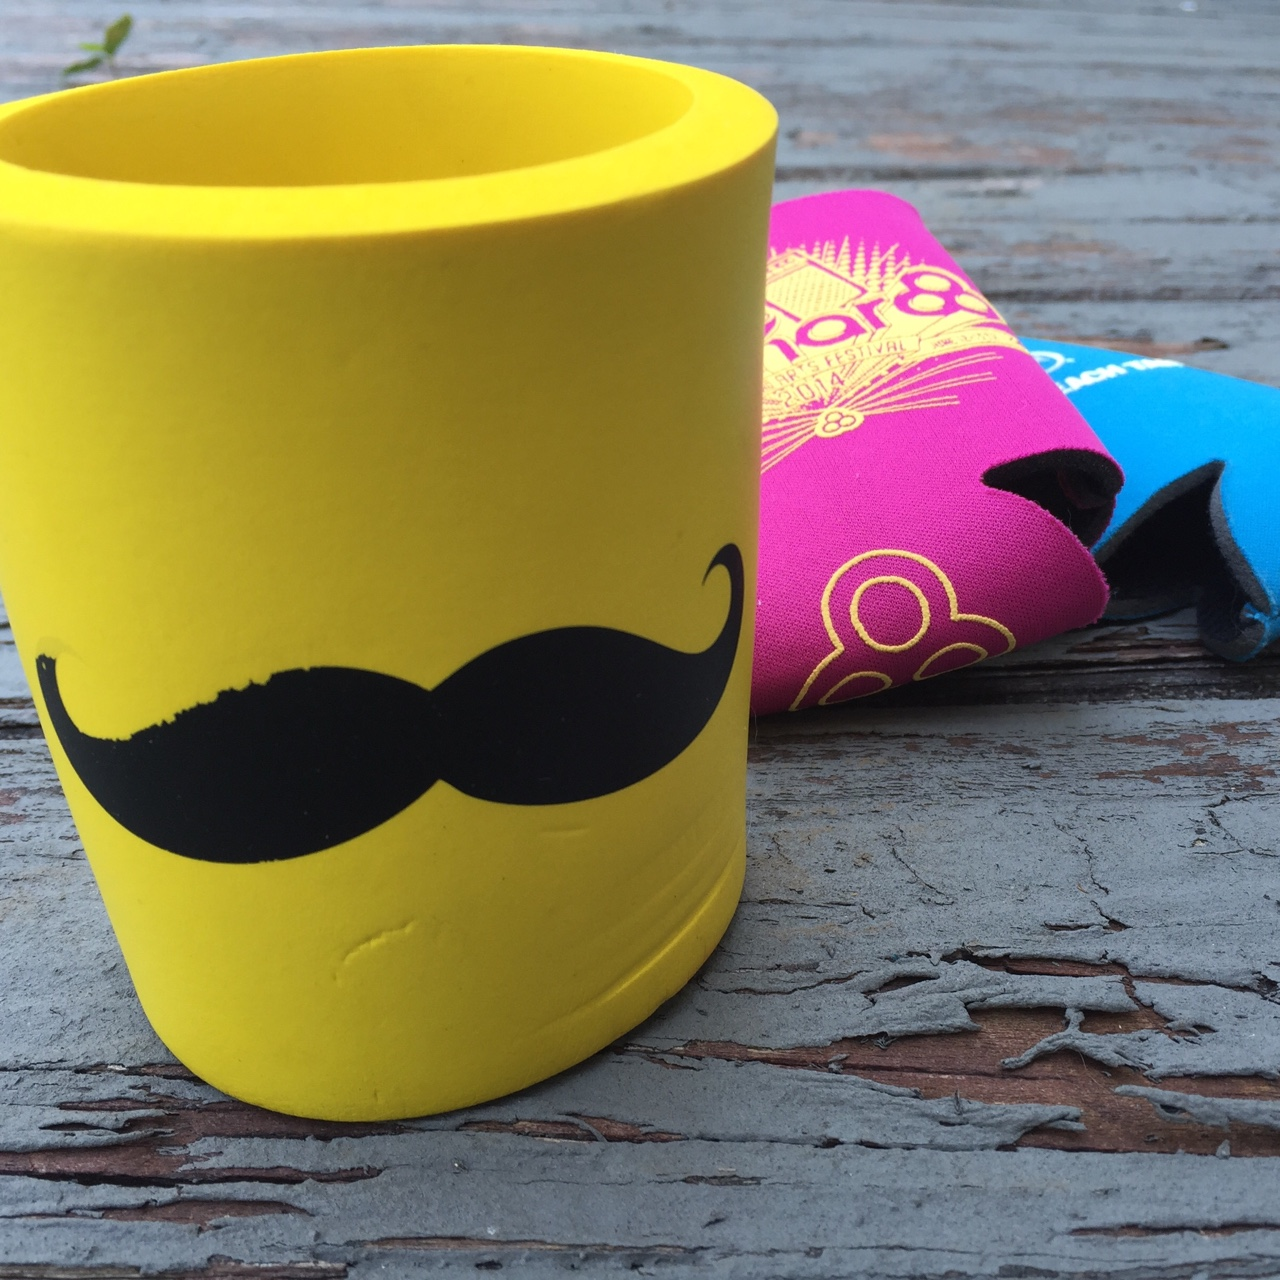 Palm Beach Tan Prices >> Mustache Coozie Bonnaroo And Palm Beach Tan Coozies